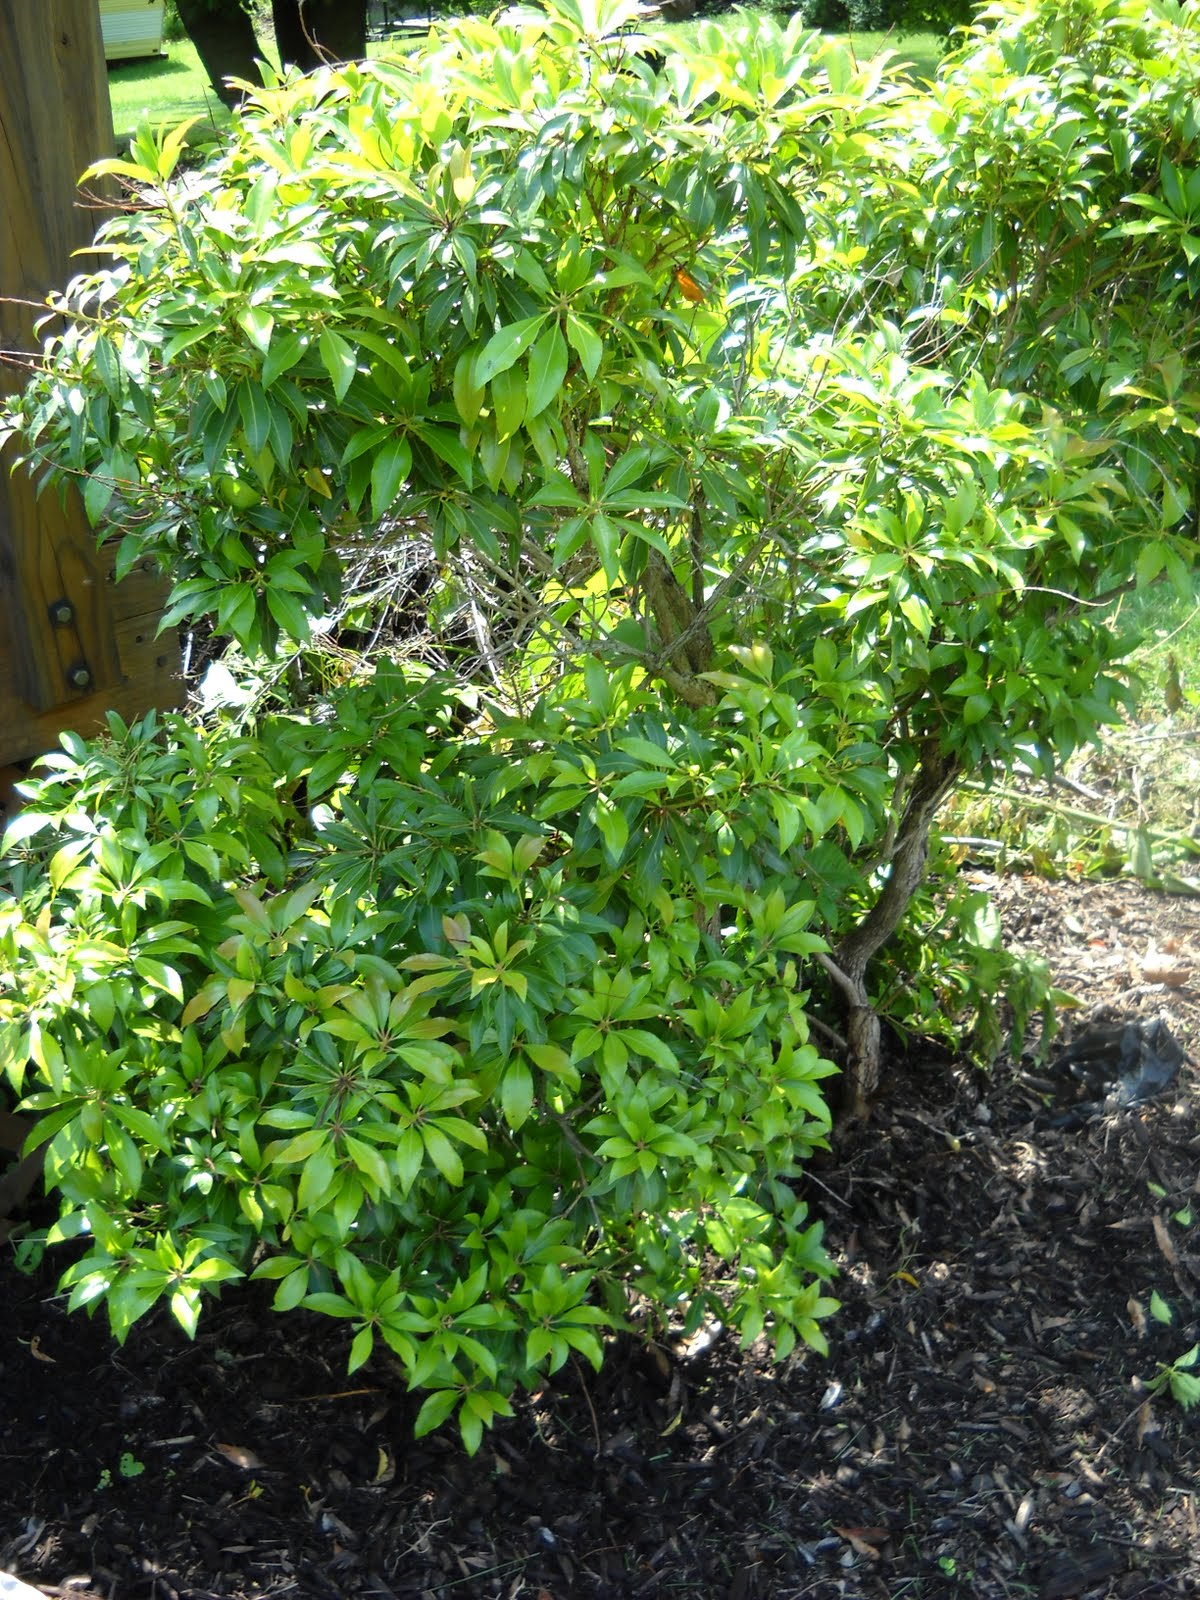 A diva 39 s garden can you identify this shrub for me for Landscape bush identification